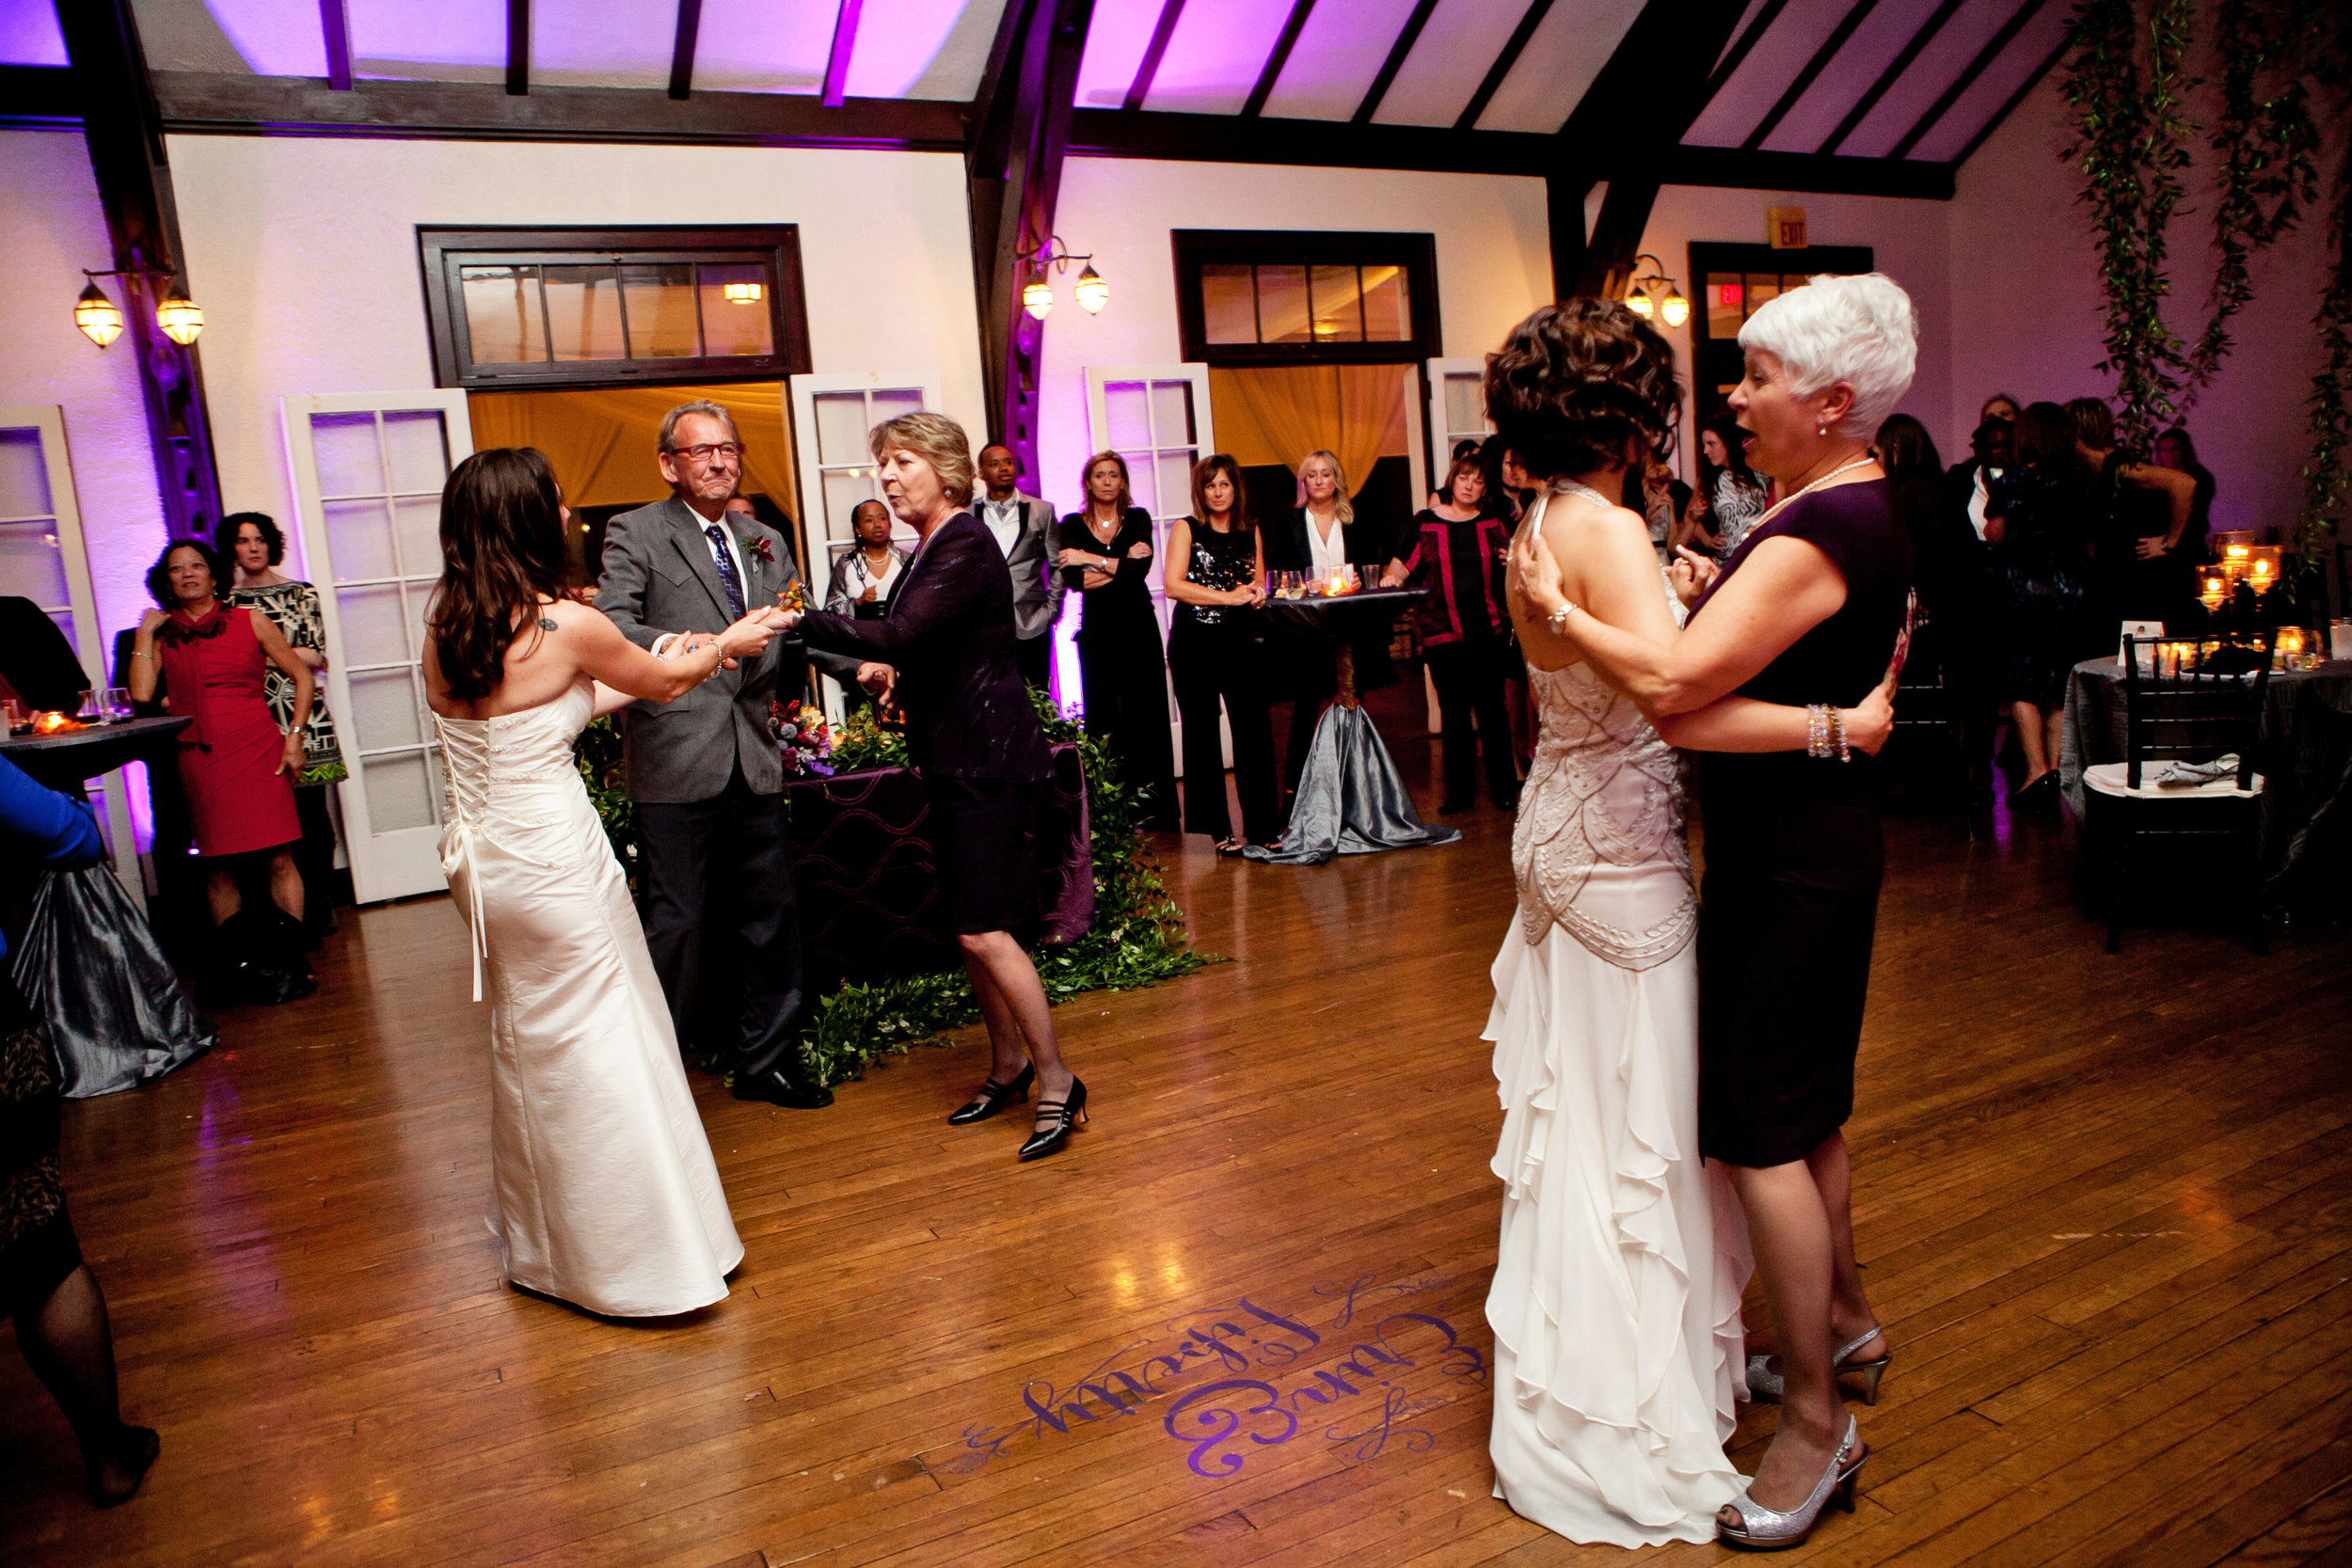 52 brides dancing with their parents father daughter dance mother daughter dance Life Design Events.jpg